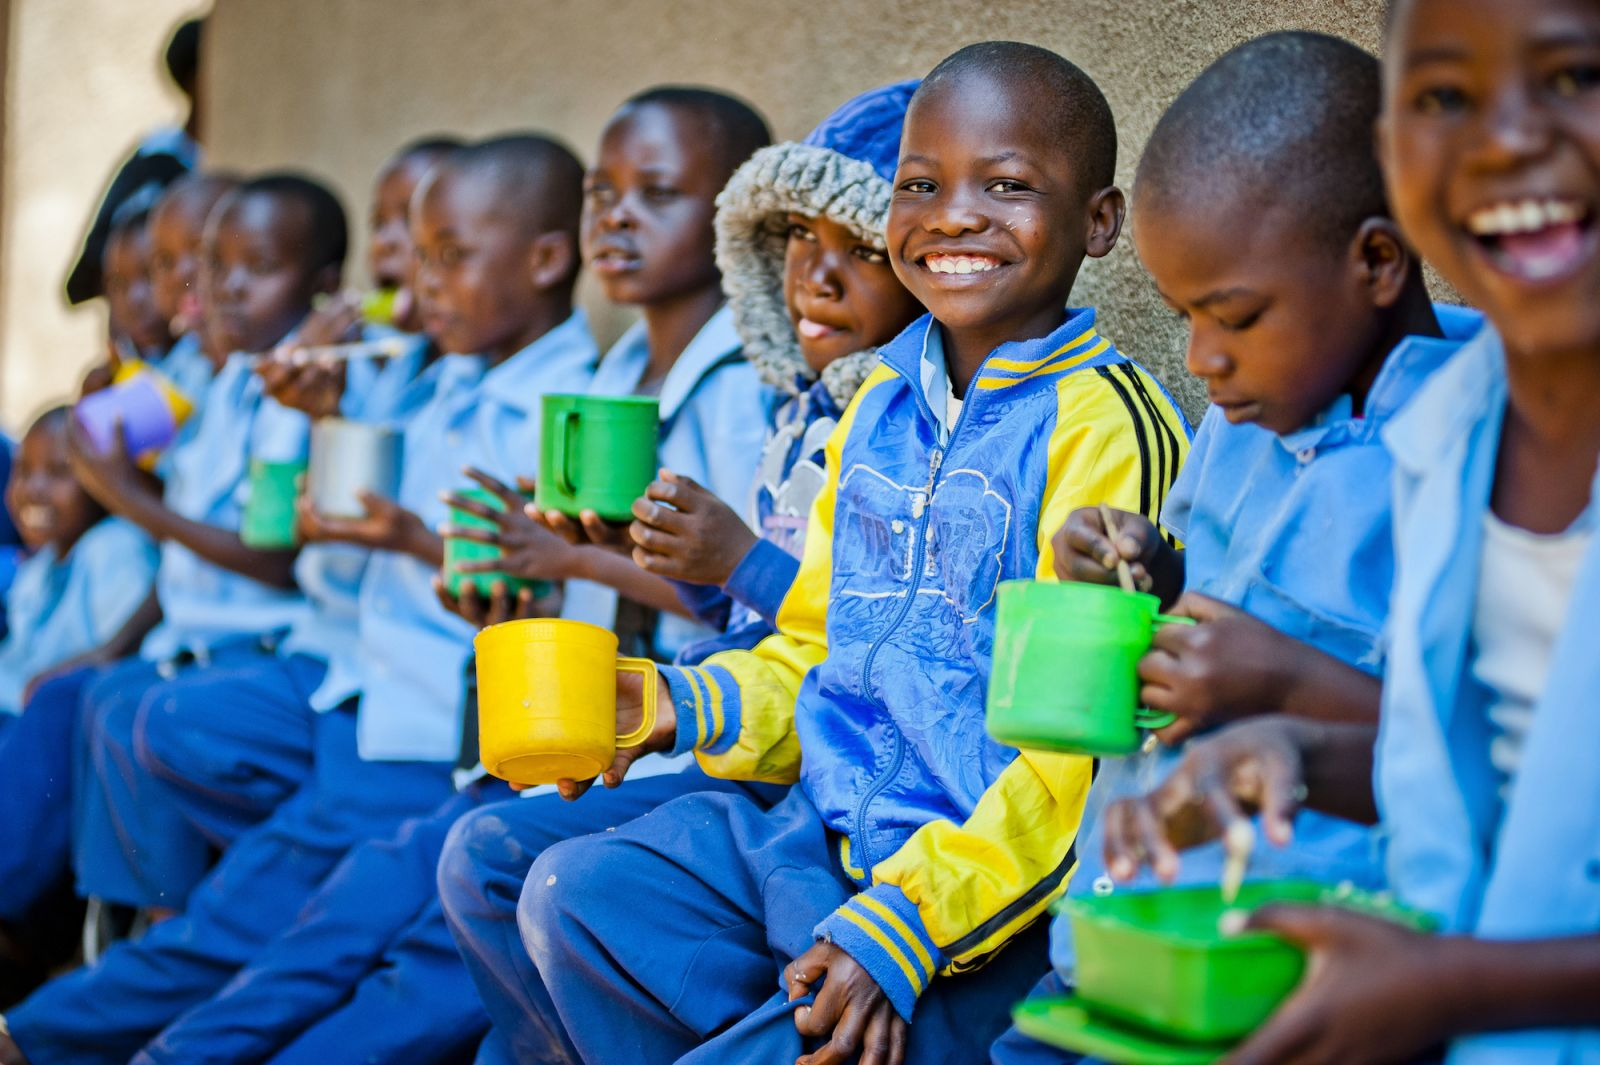 Zambian Children Eating in School